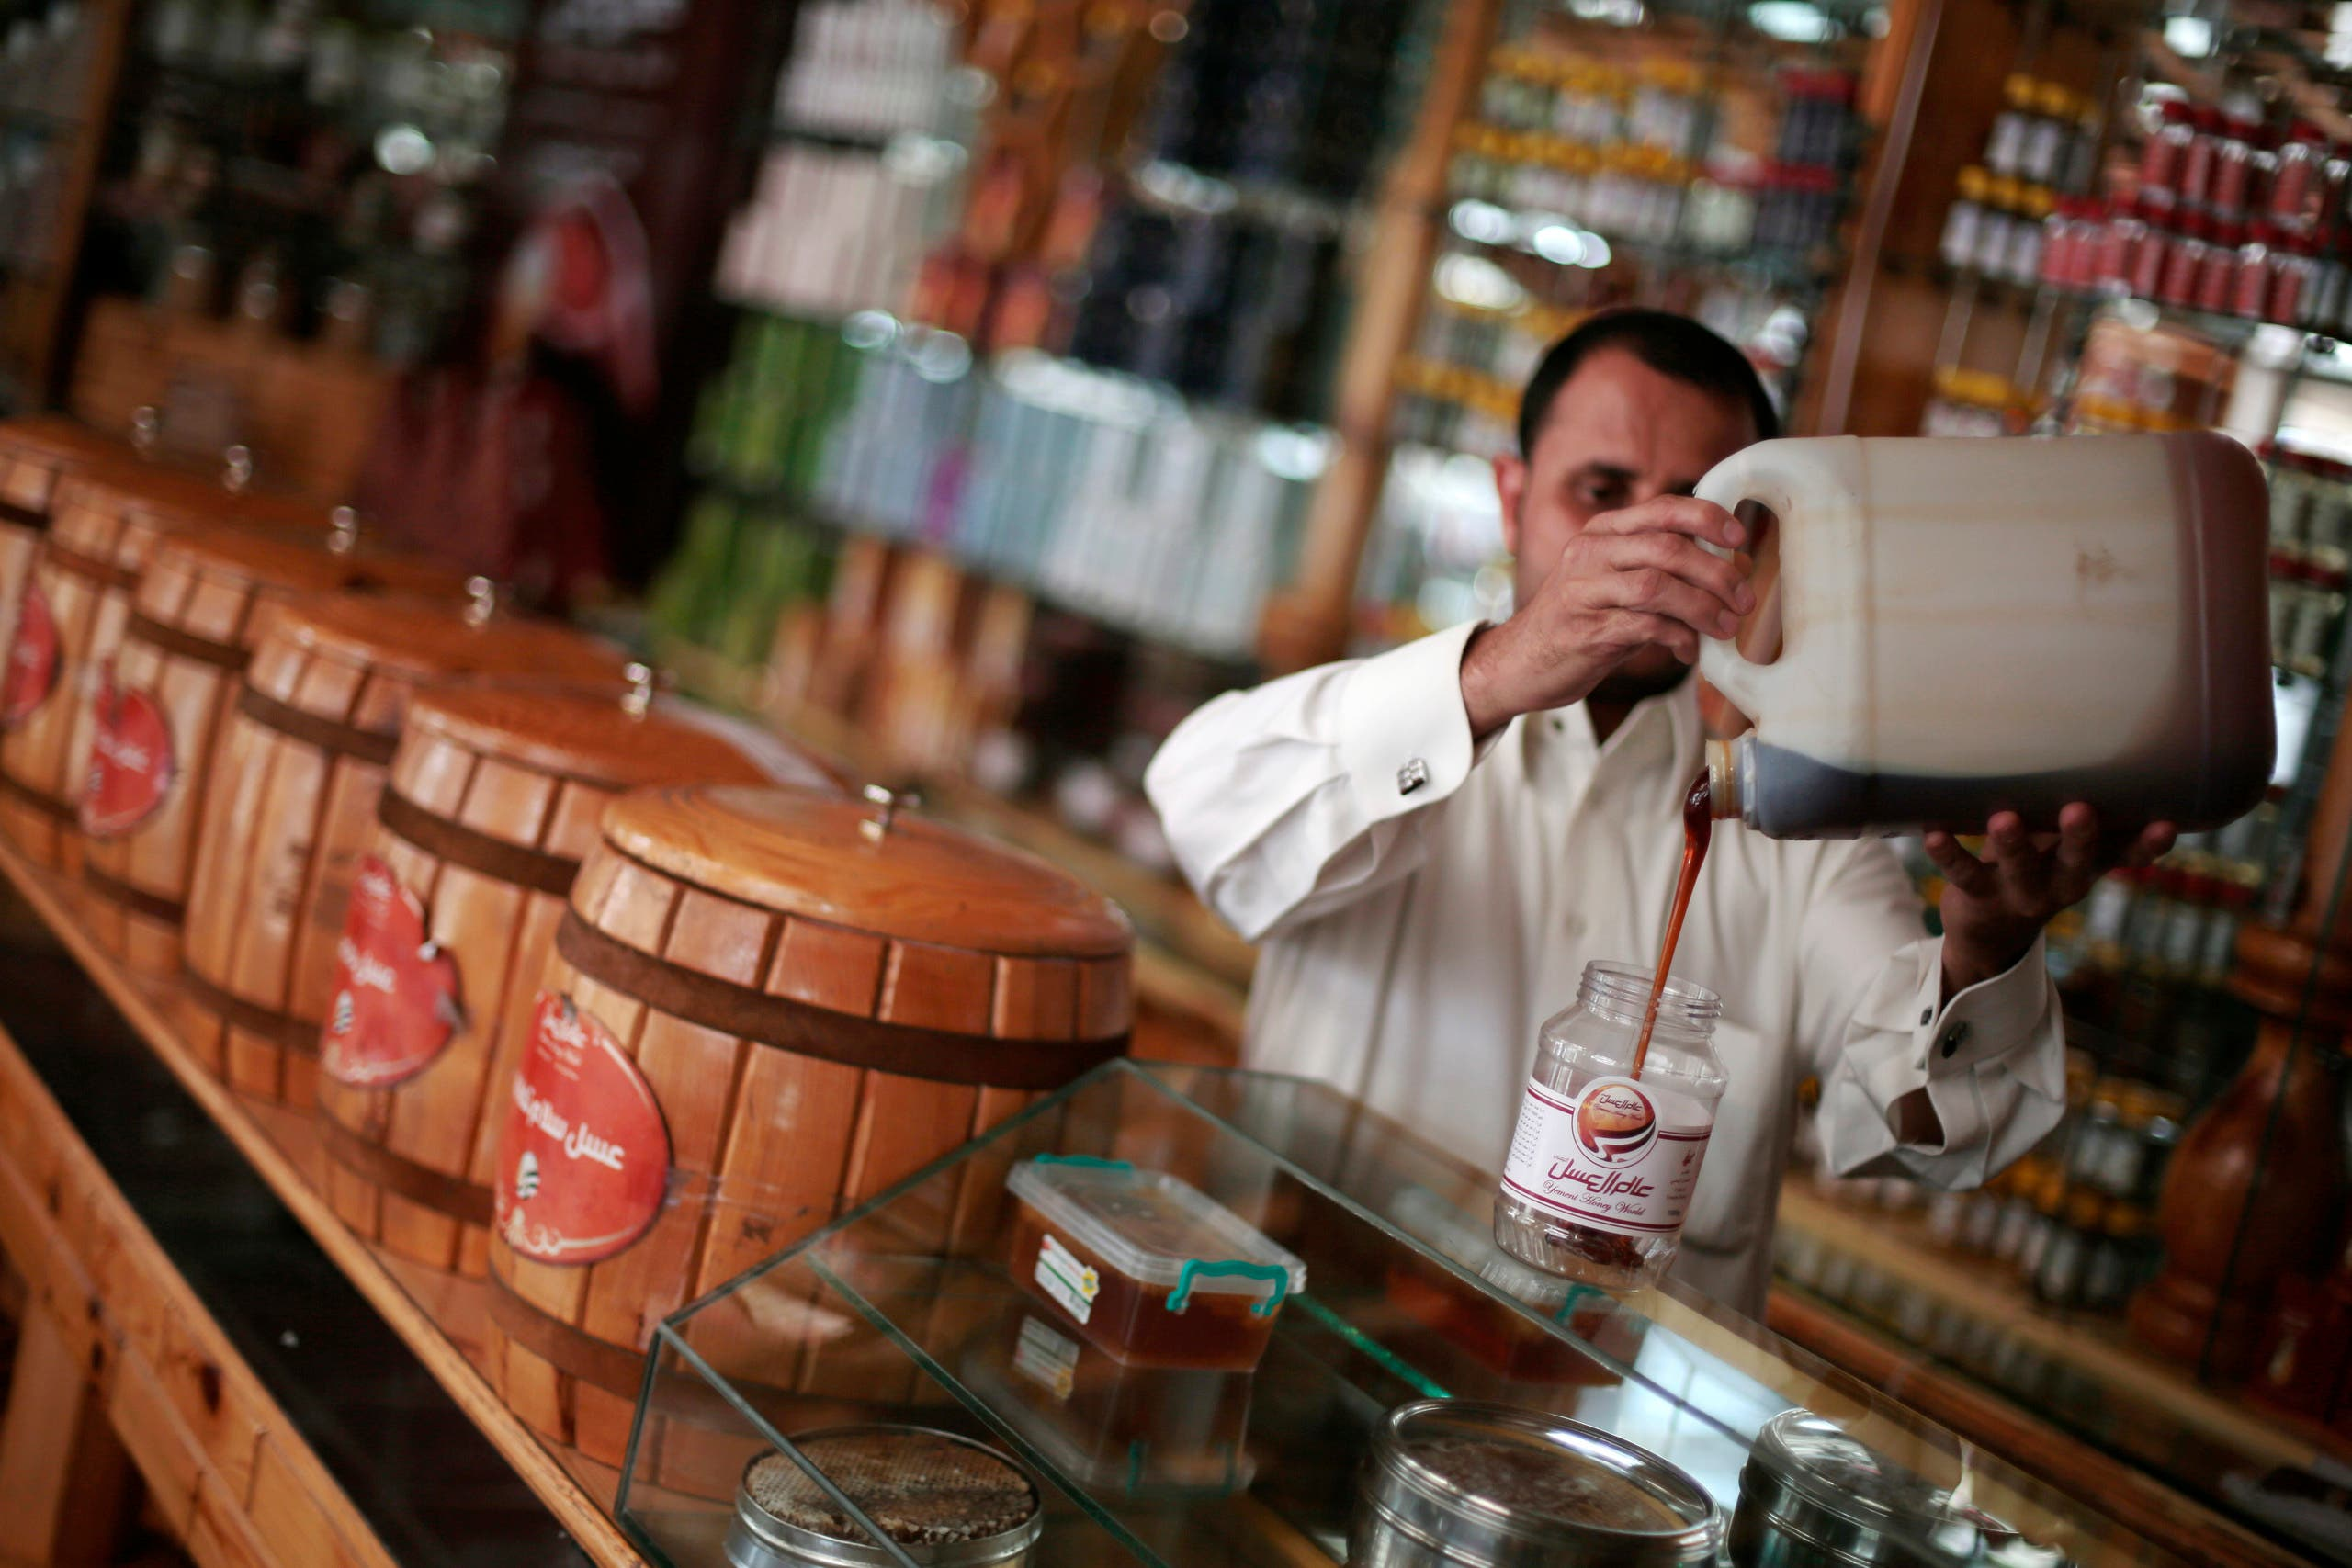 In this Tuesday, Aug. 22, 2017 photo, a Yemeni vendor displays honey for sale in a shop in Sanaa, Yemen.  AP